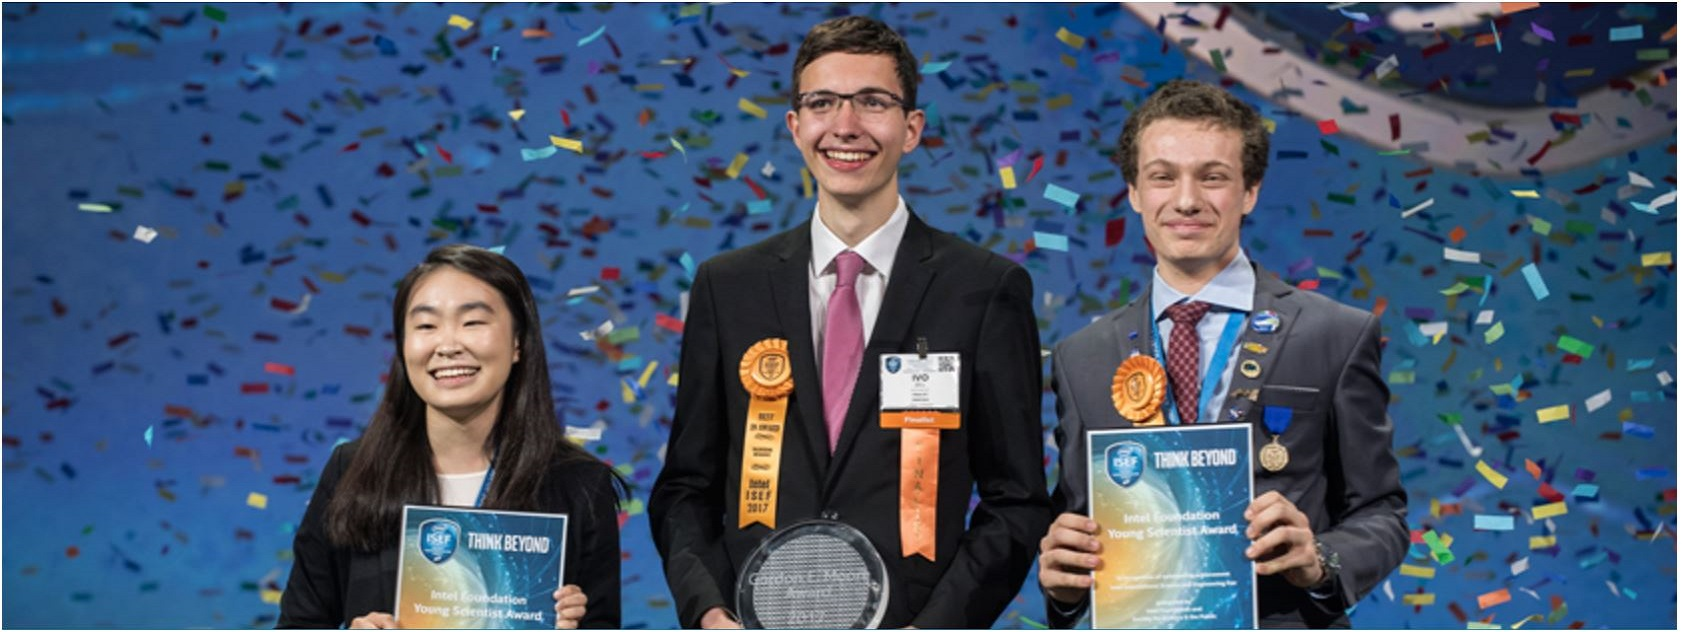 Intel ISEF International Awards. Be a STEM Winner!